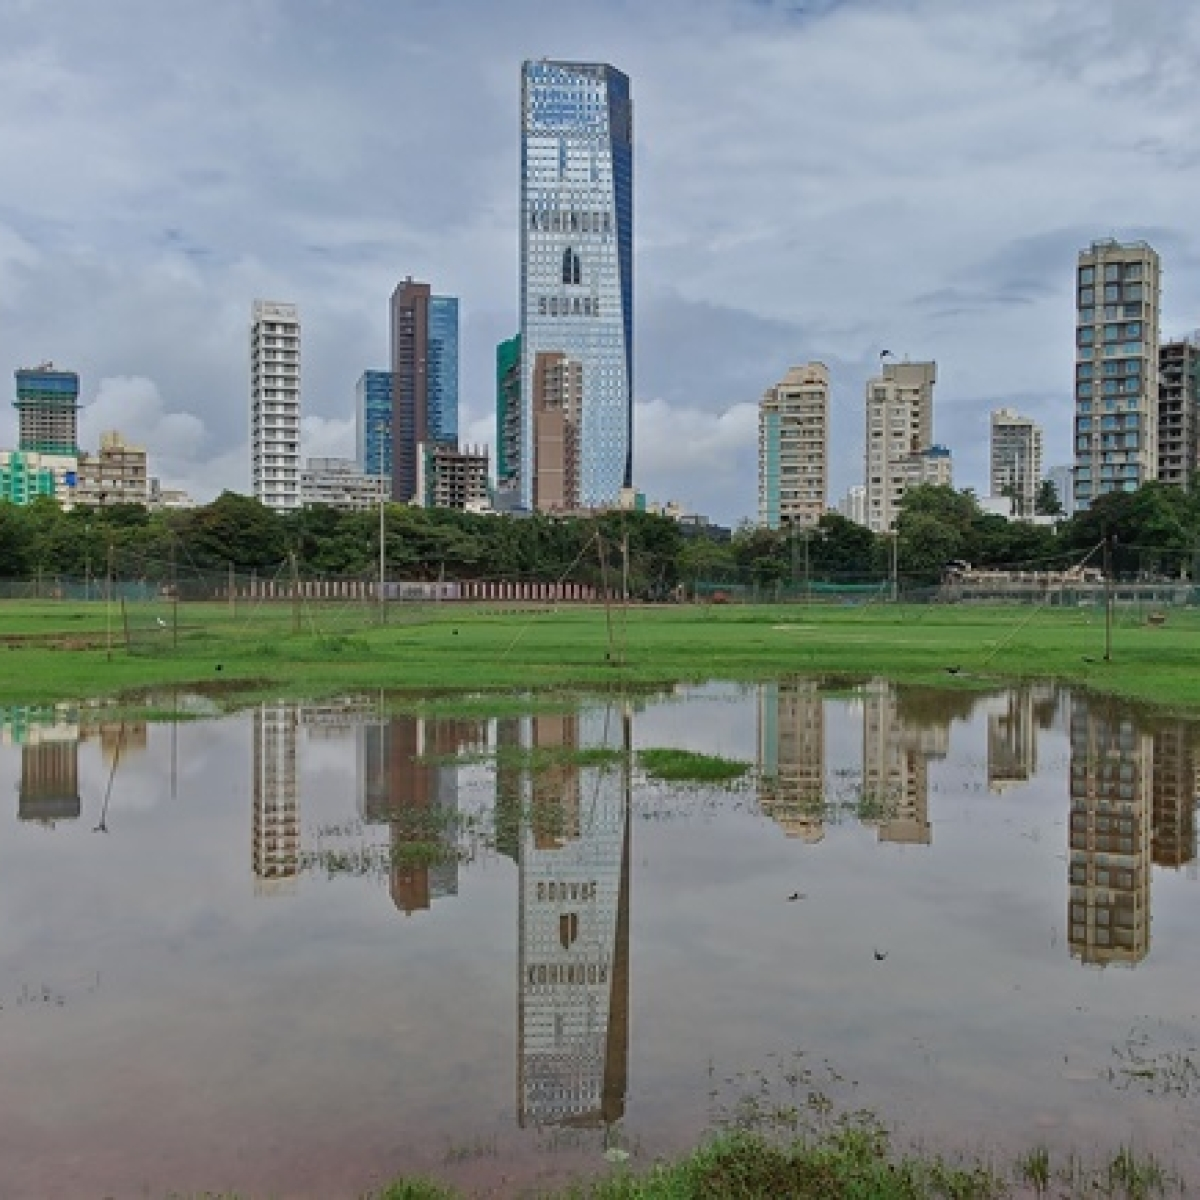 Mumbai weather update: IMD predicts moderate rainfall for city today